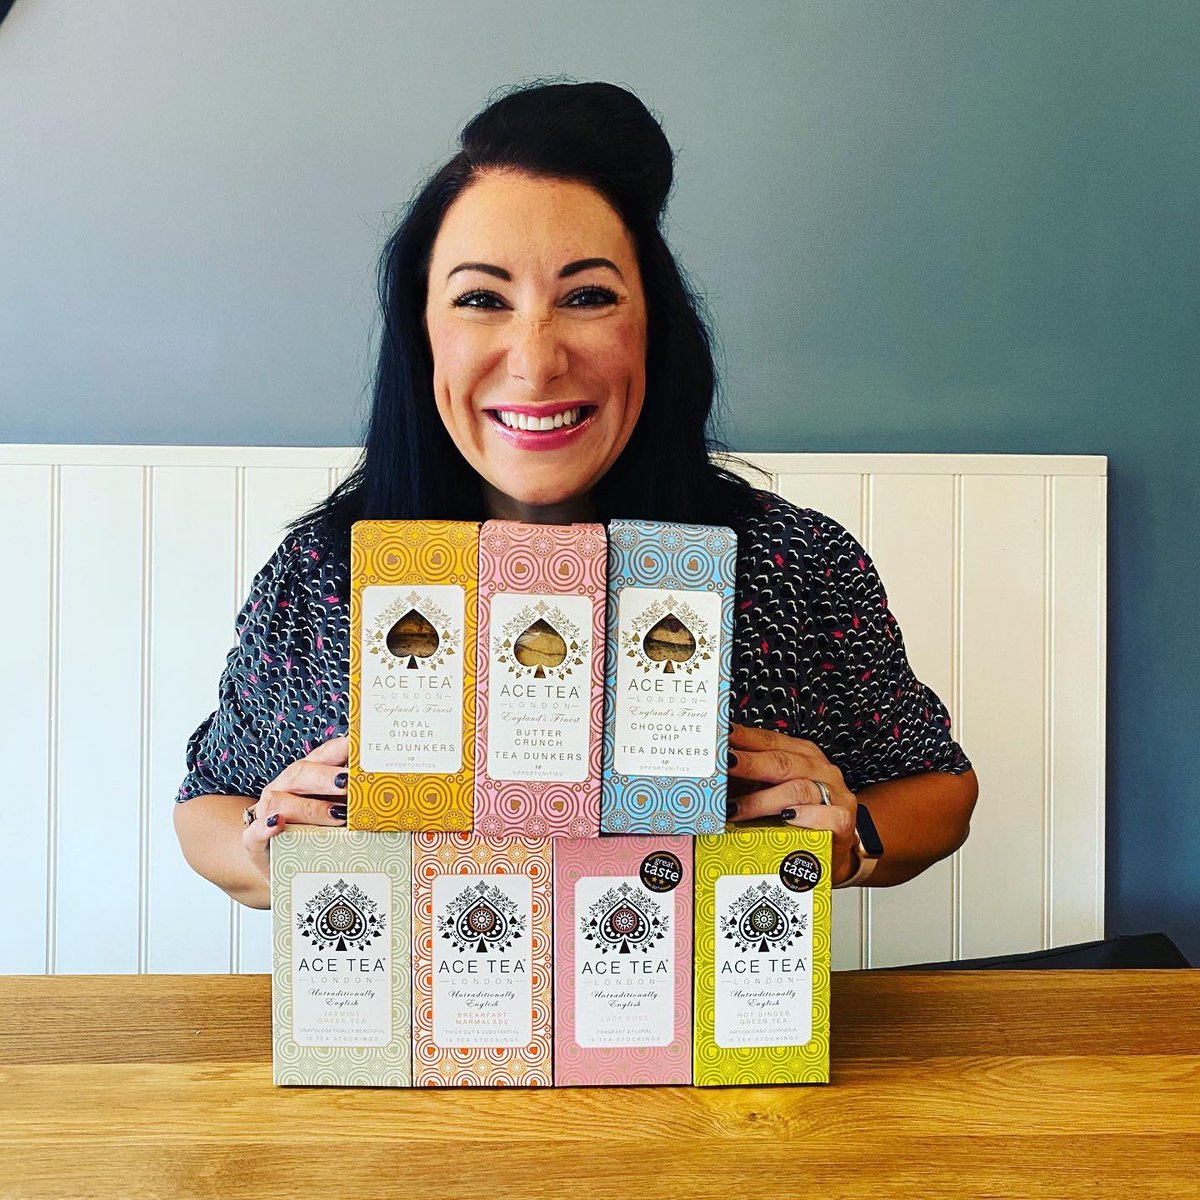 Some #MondayMotivation for you!   Enter my #Competition to #WIN an @AceTeaLondon prize bundle of Tea & Tea Dunker biscuits! Just #FLW us both & #RT   T&C's: https://suzypeltabakes.com/competition/ace-tea-london-tea-biscuits-bundle-giveaway/ …  #MondayVibes #mondaythoughts #giveaway #ad pic.twitter.com/McSjqAPnib